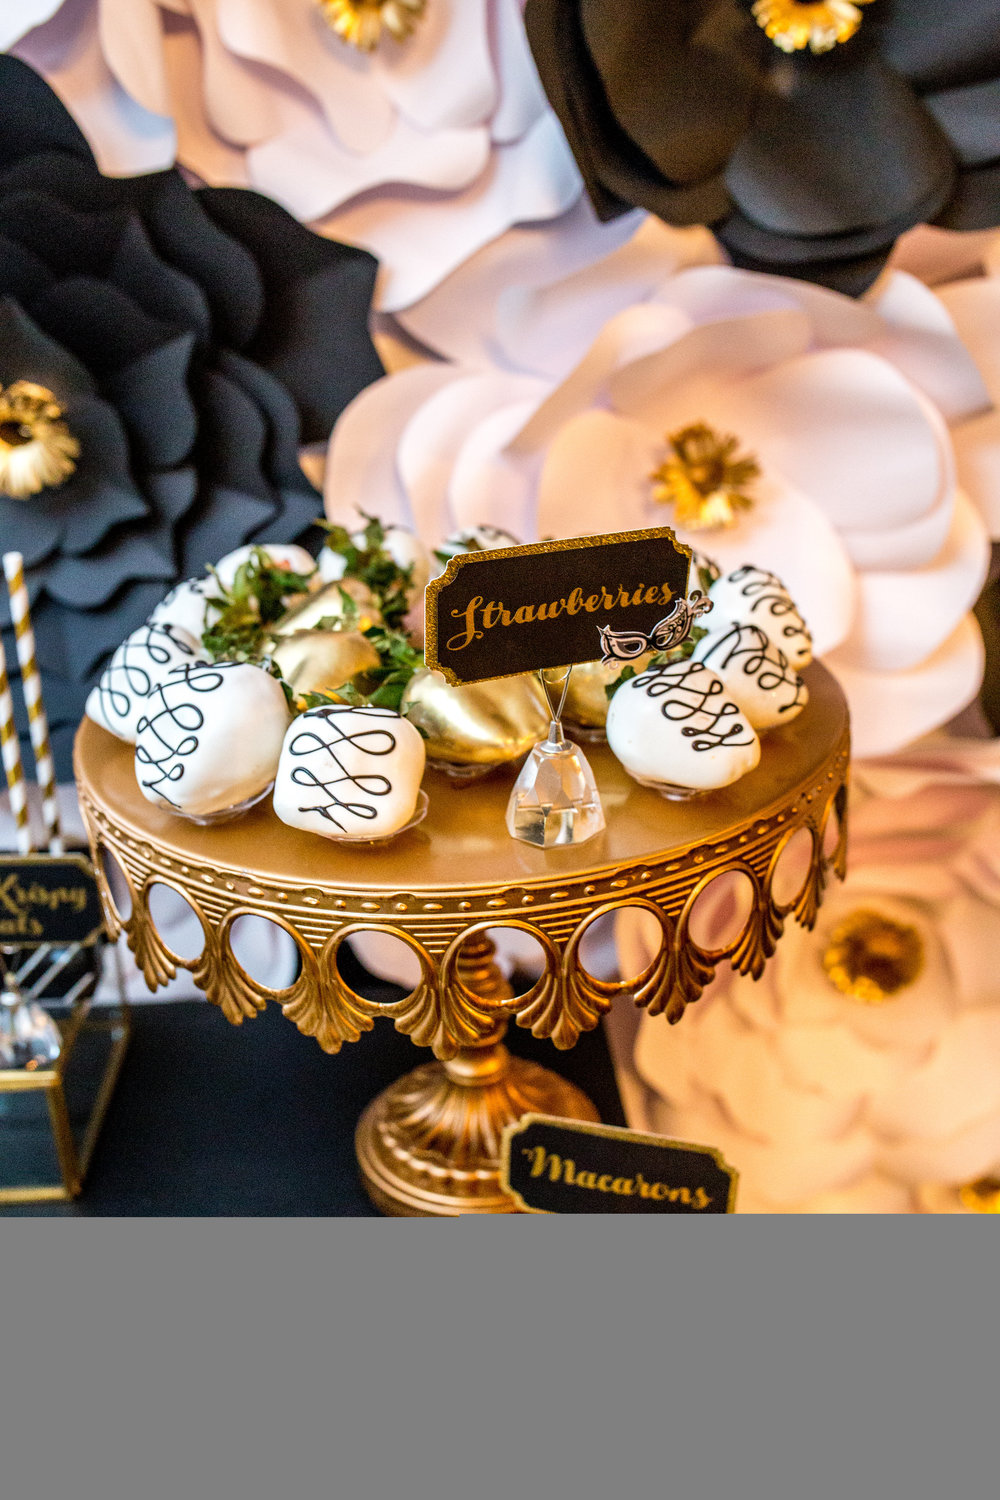 Cake Stands | Dessert Plates| Entertaining Pieces